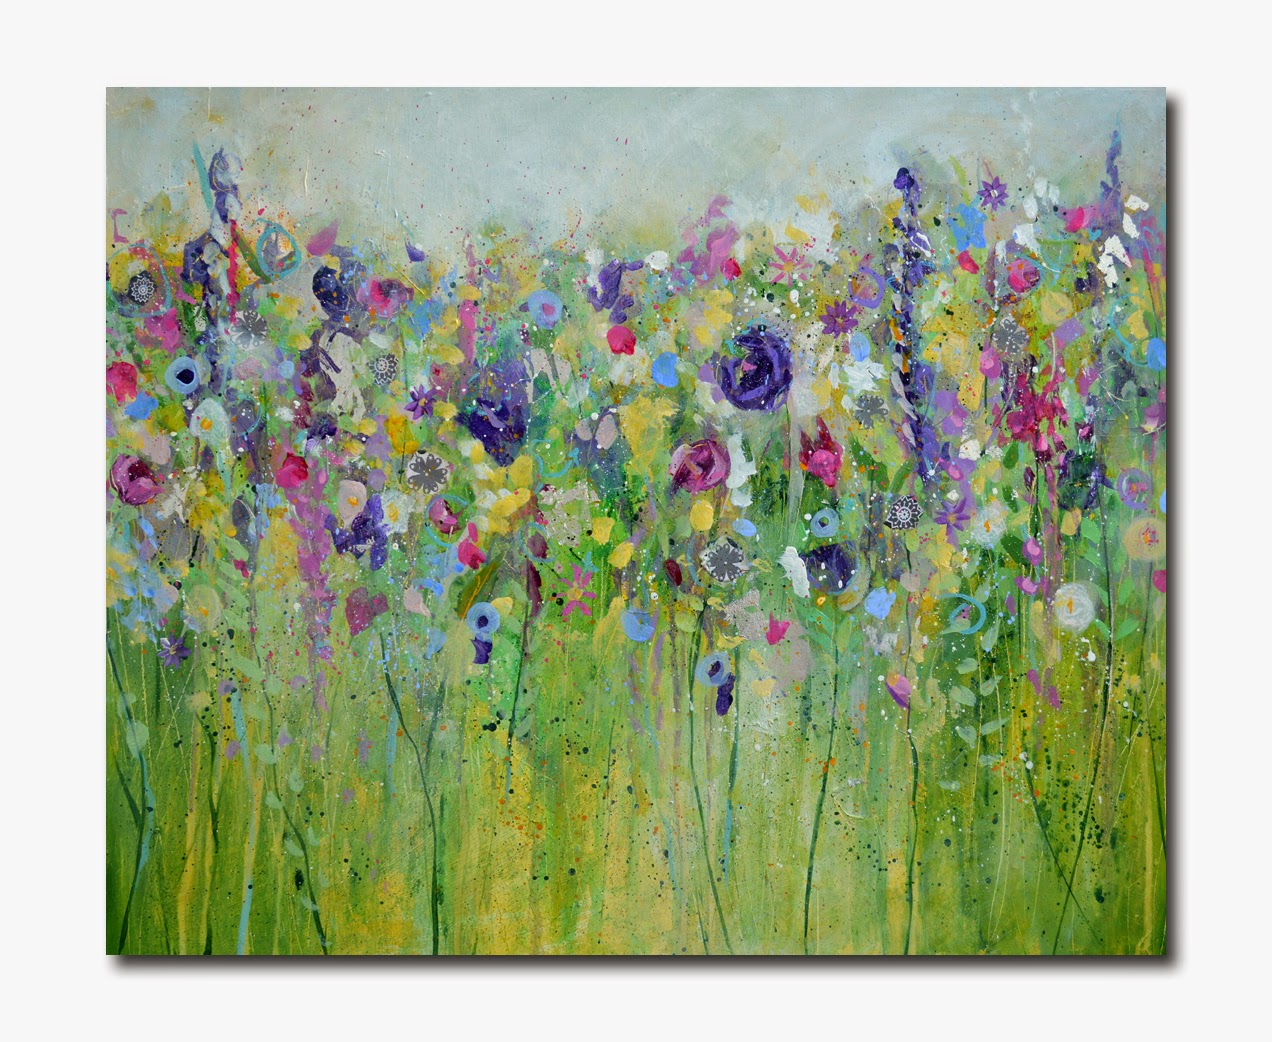 Spring Meadow - Original Painting